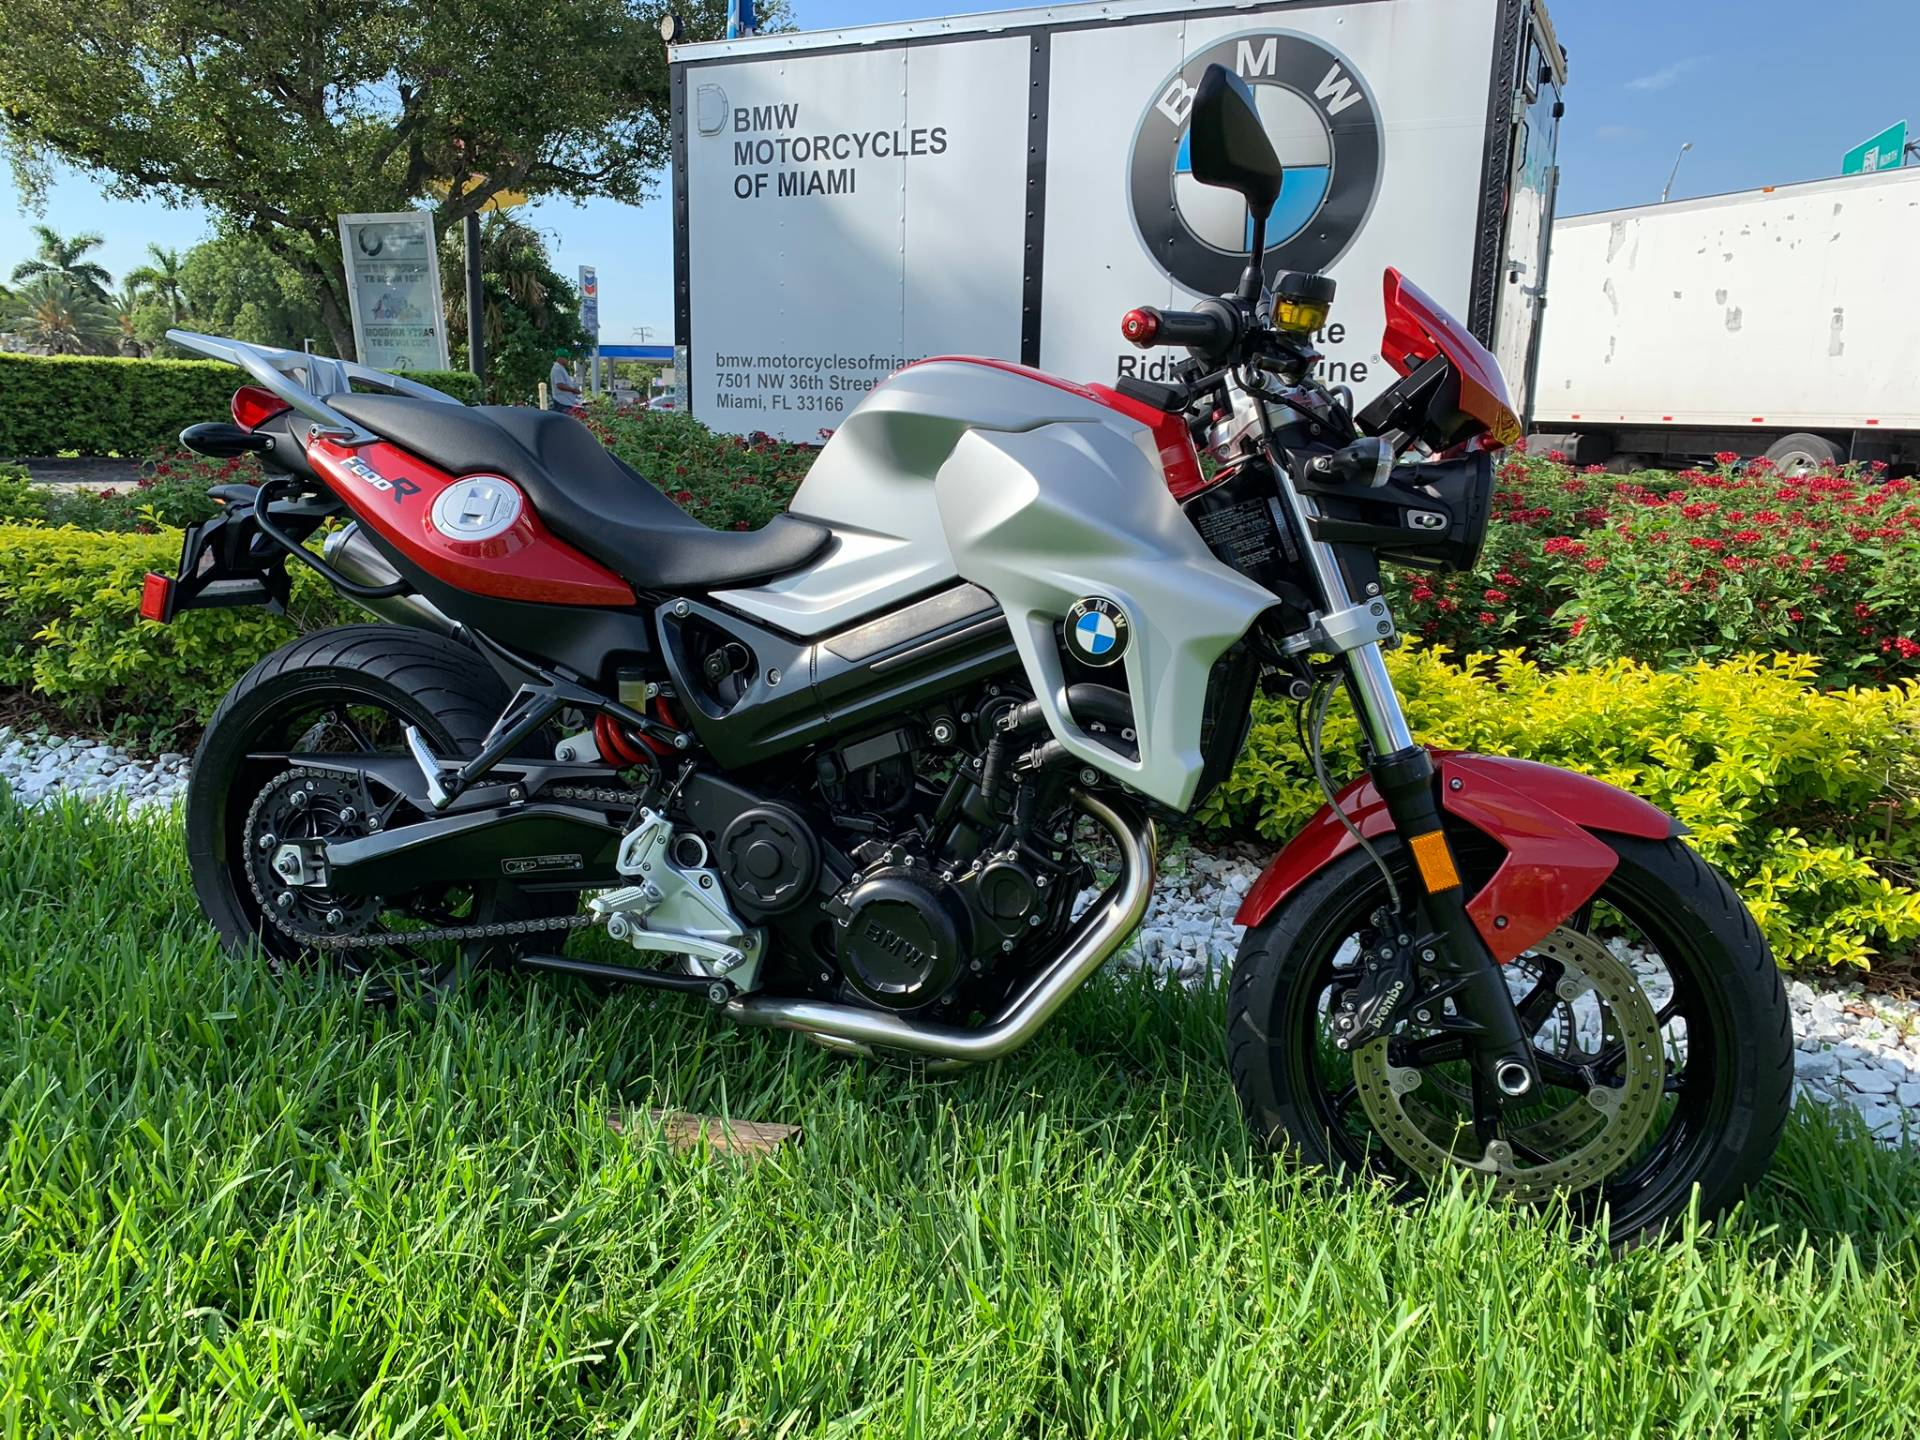 Used 2012 BMW F 800 R for sale, BMW F 800R for sale, BMW Motorcycle F800R, used BMW Roaster, Naked, 800, BMW. BMW Motorcycles of Miami, Motorcycles of Miami, Motorcycles Miami, New Motorcycles, Used Motorcycles, pre-owned. #BMWMotorcyclesOfMiami #MotorcyclesOfMiami. - Photo 26